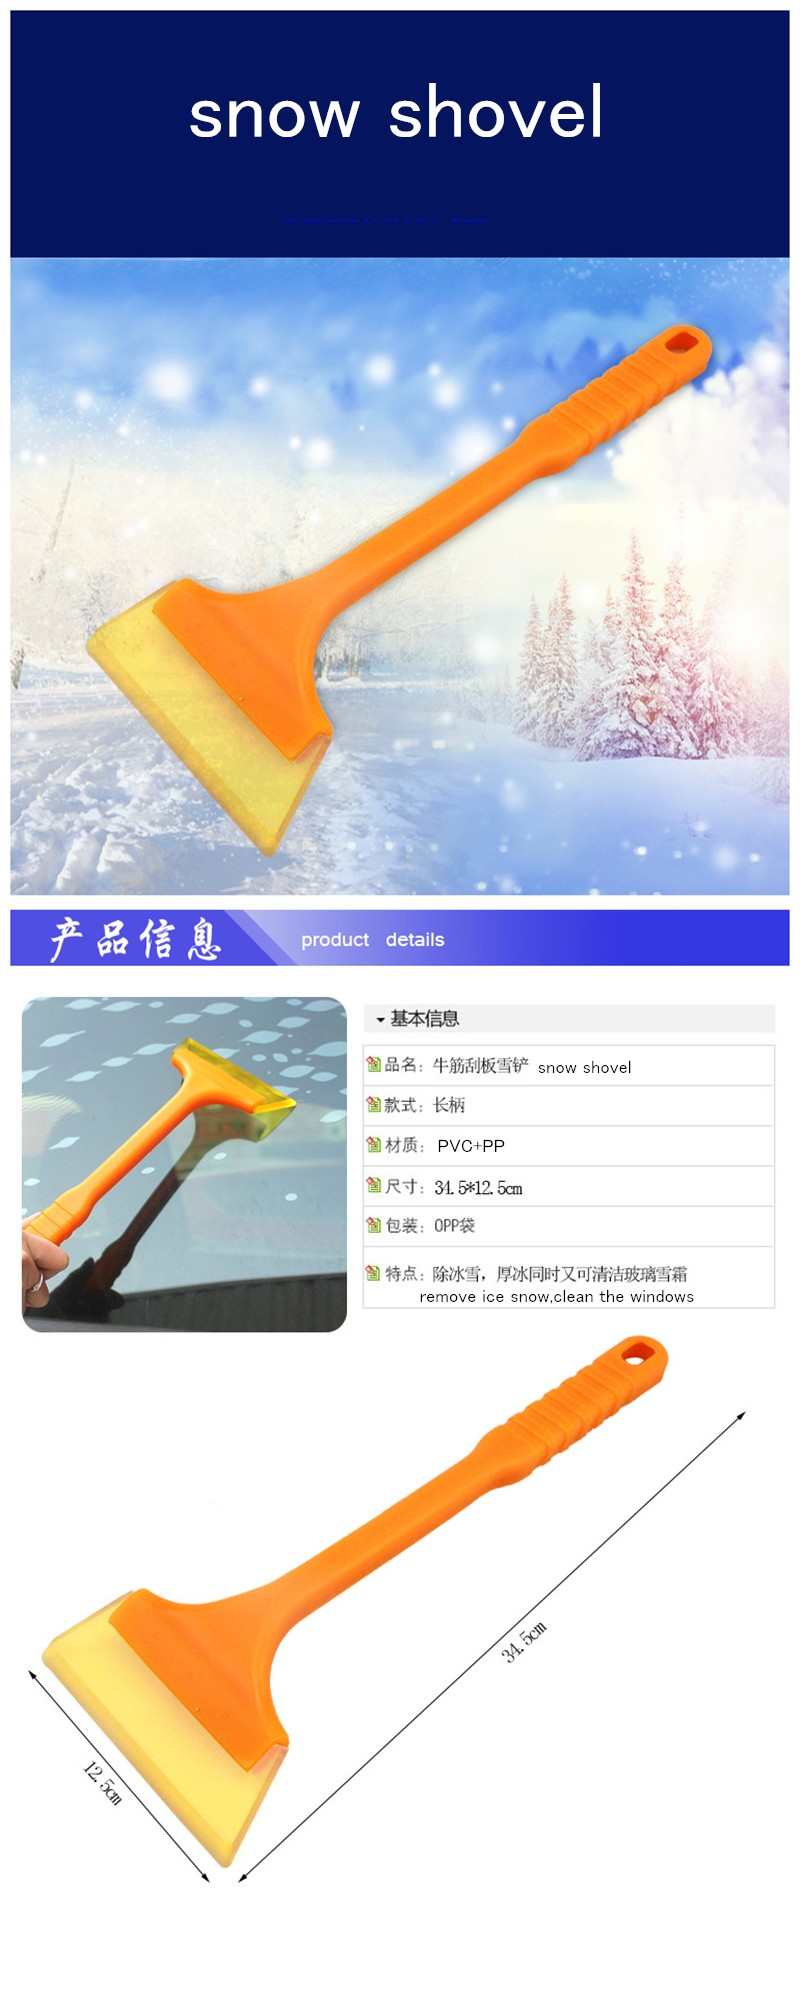 ICE SCRAPER AUTO TOOLS,car snow shovel,remove snow ice,clean the windows,PVC and PP material winter used